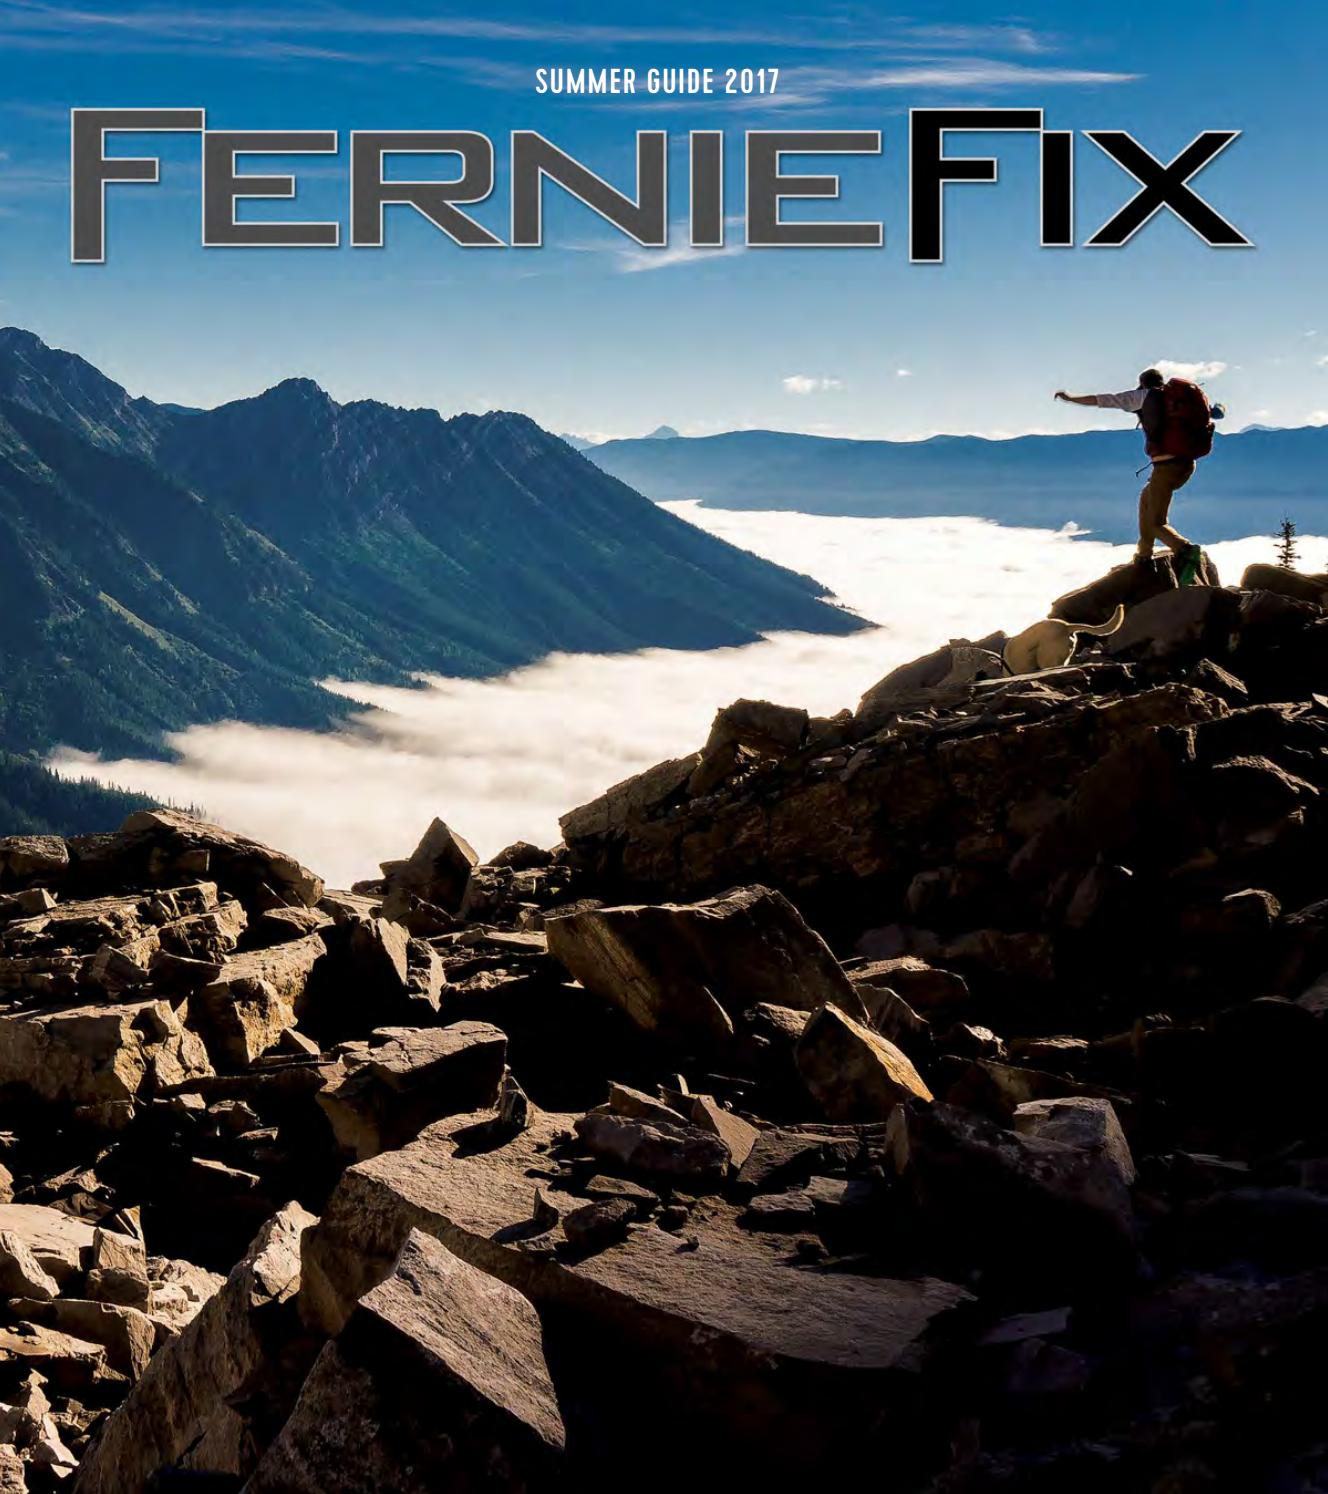 Fernie Fix Summer Guide 2017 By Claris Media